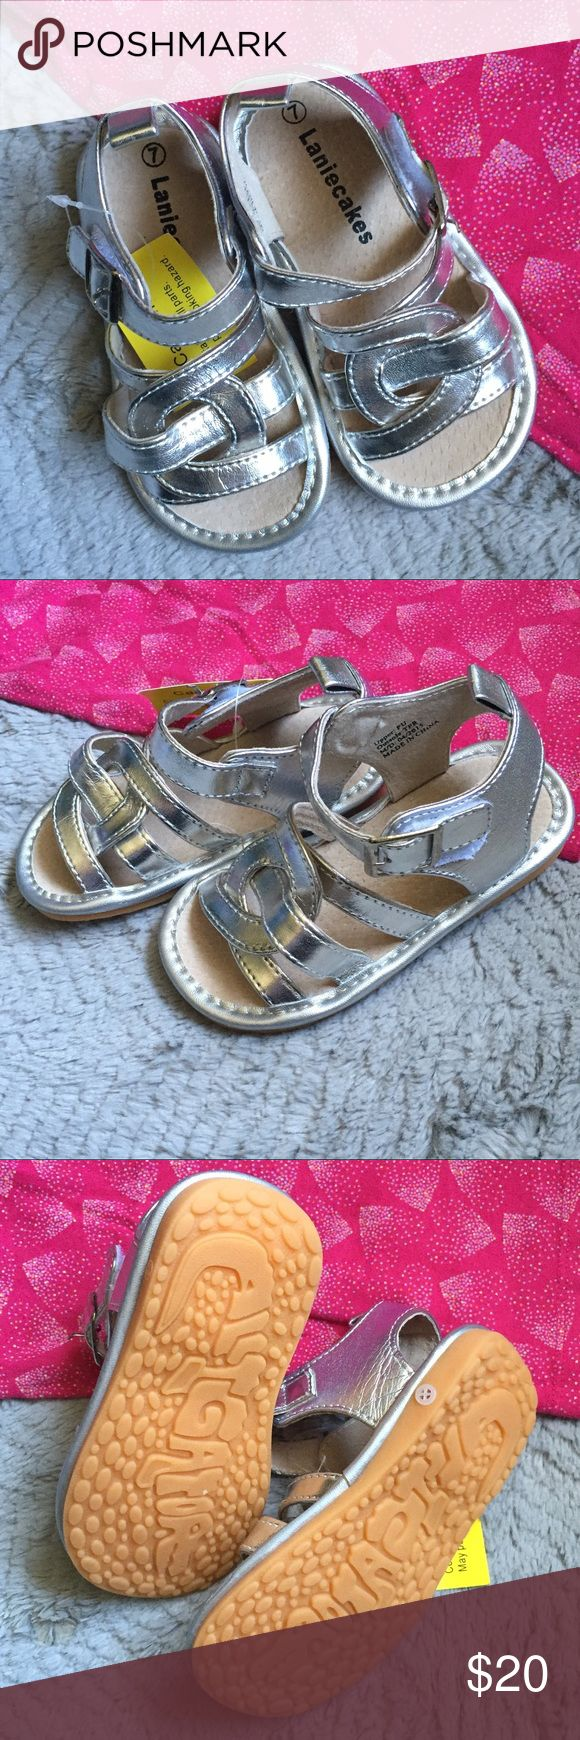 Labor Cakes Squeaker Shoes NWT Lanie Cakes squeaker shoes in silver. Lanie Cakes Shoes Sandals & Flip Flops